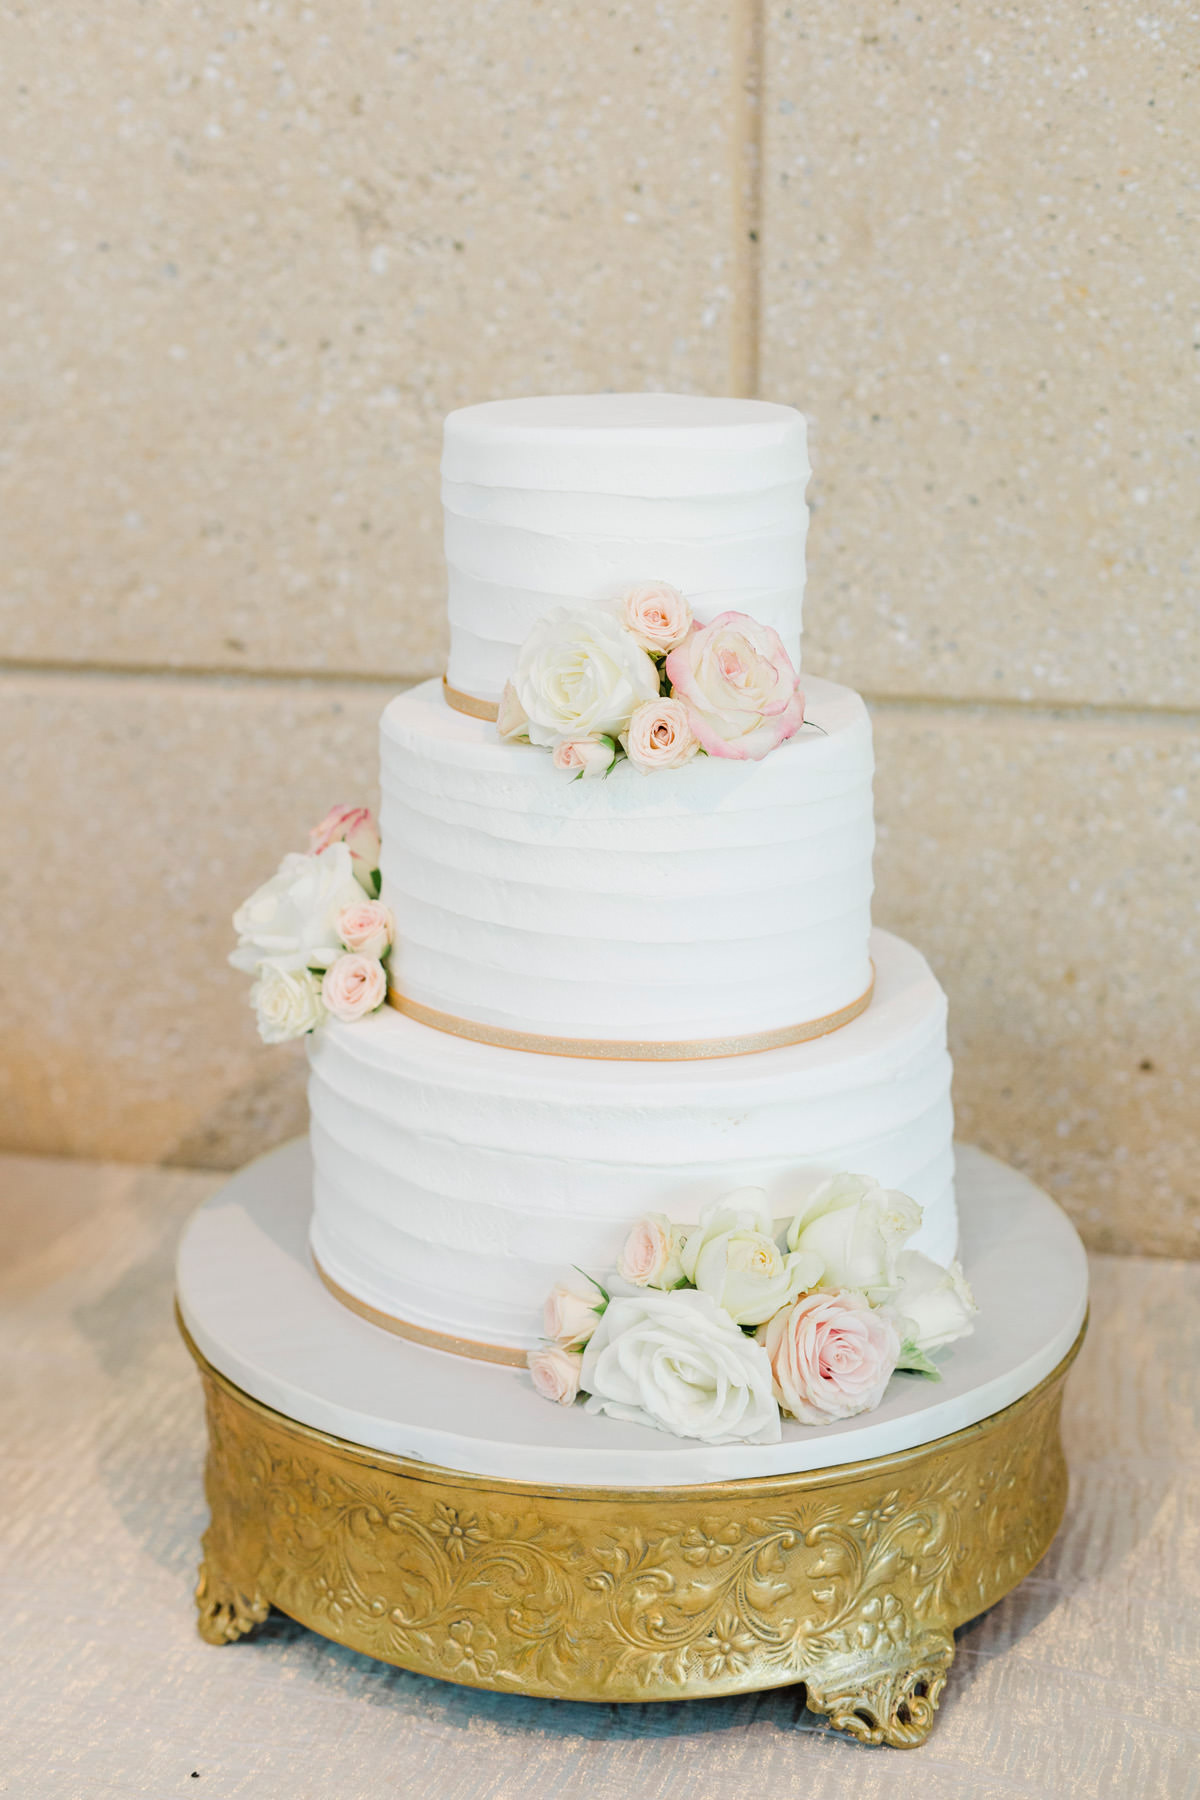 Three Tier Buttercream Wedding Cake accented with Blush Pink and White Roses on Round Gold Ornate Cake Stand | Alessi Bakery